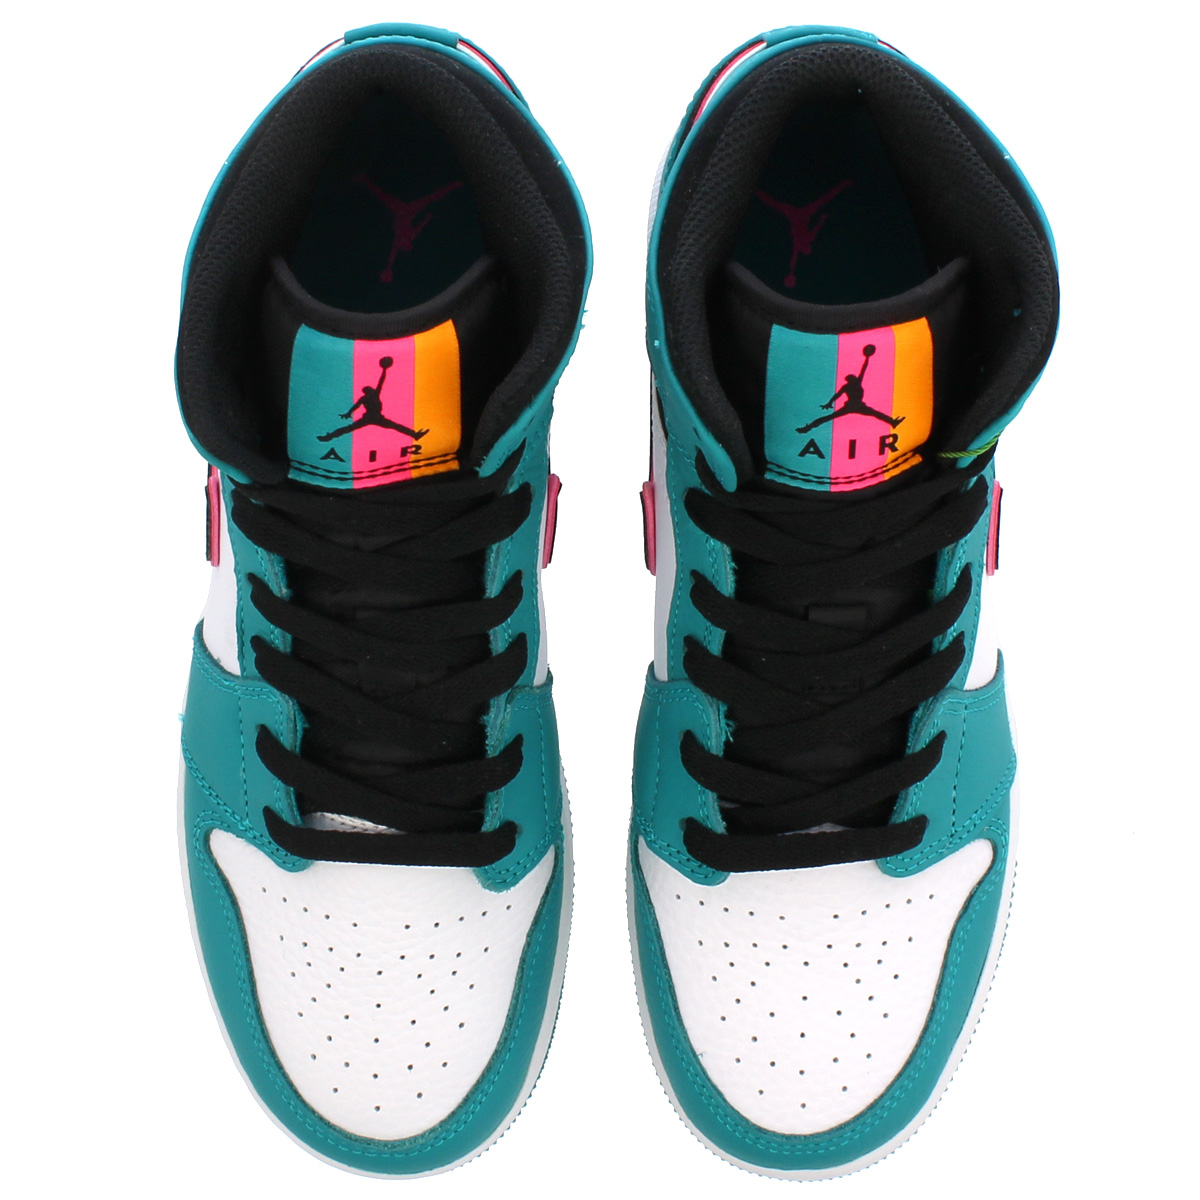 7b16c4895d8 NIKE AIR JORDAN 1 MID BG Nike Air Jordan 1 mid BG TURBO GREEN BLACK HYPER  PINK ORANGE PEEL bq6931-306